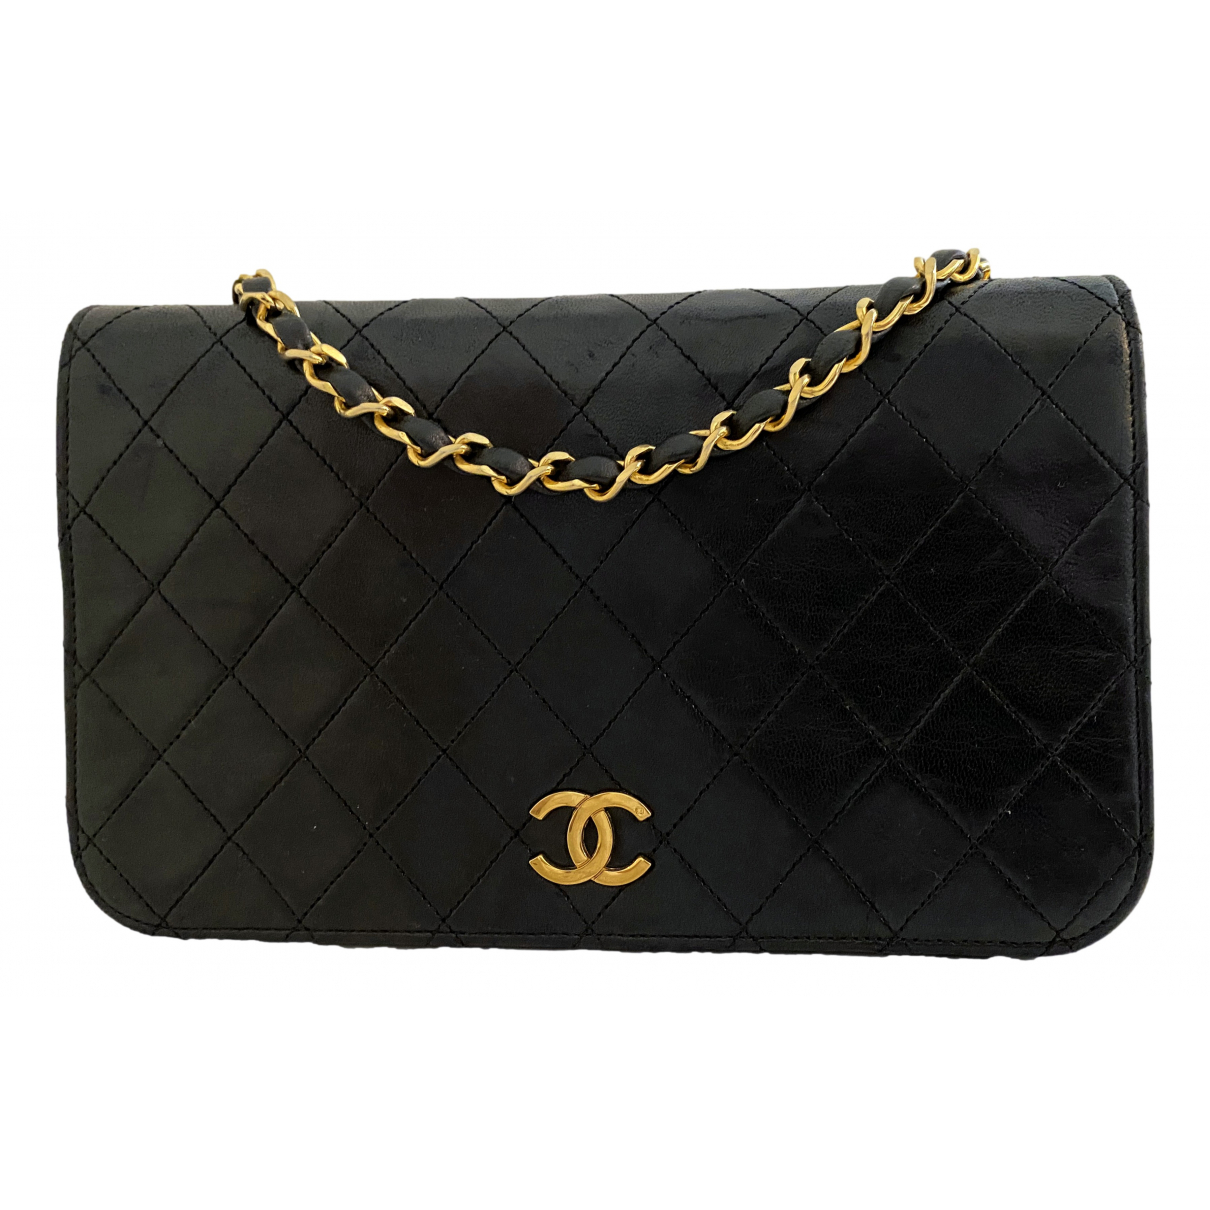 Chanel Wallet on Chain Black Leather Clutch bag for Women \N